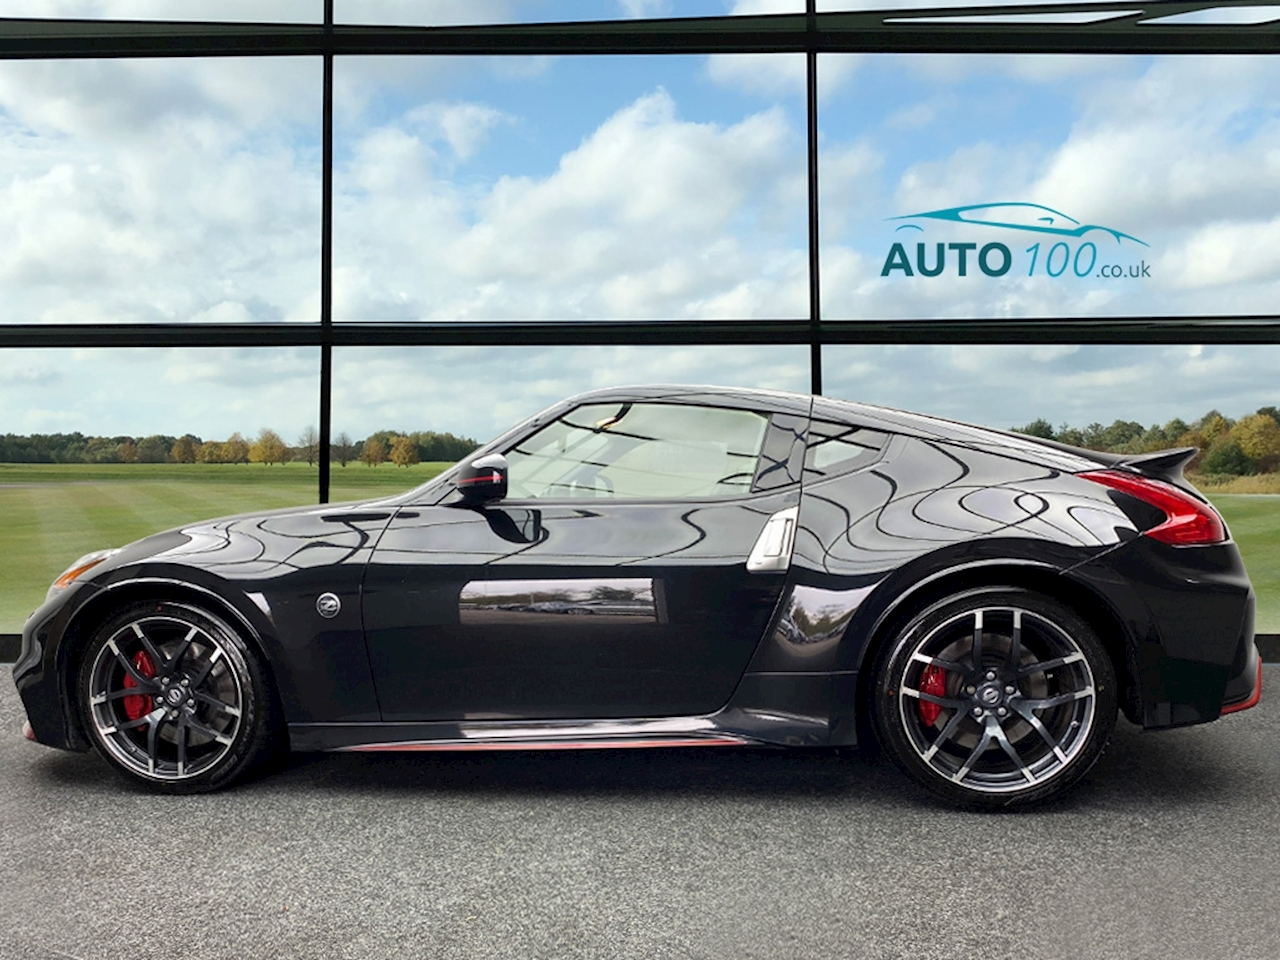 Nissan 370 Z Nismo Coupe 3.7 Manual Petrol